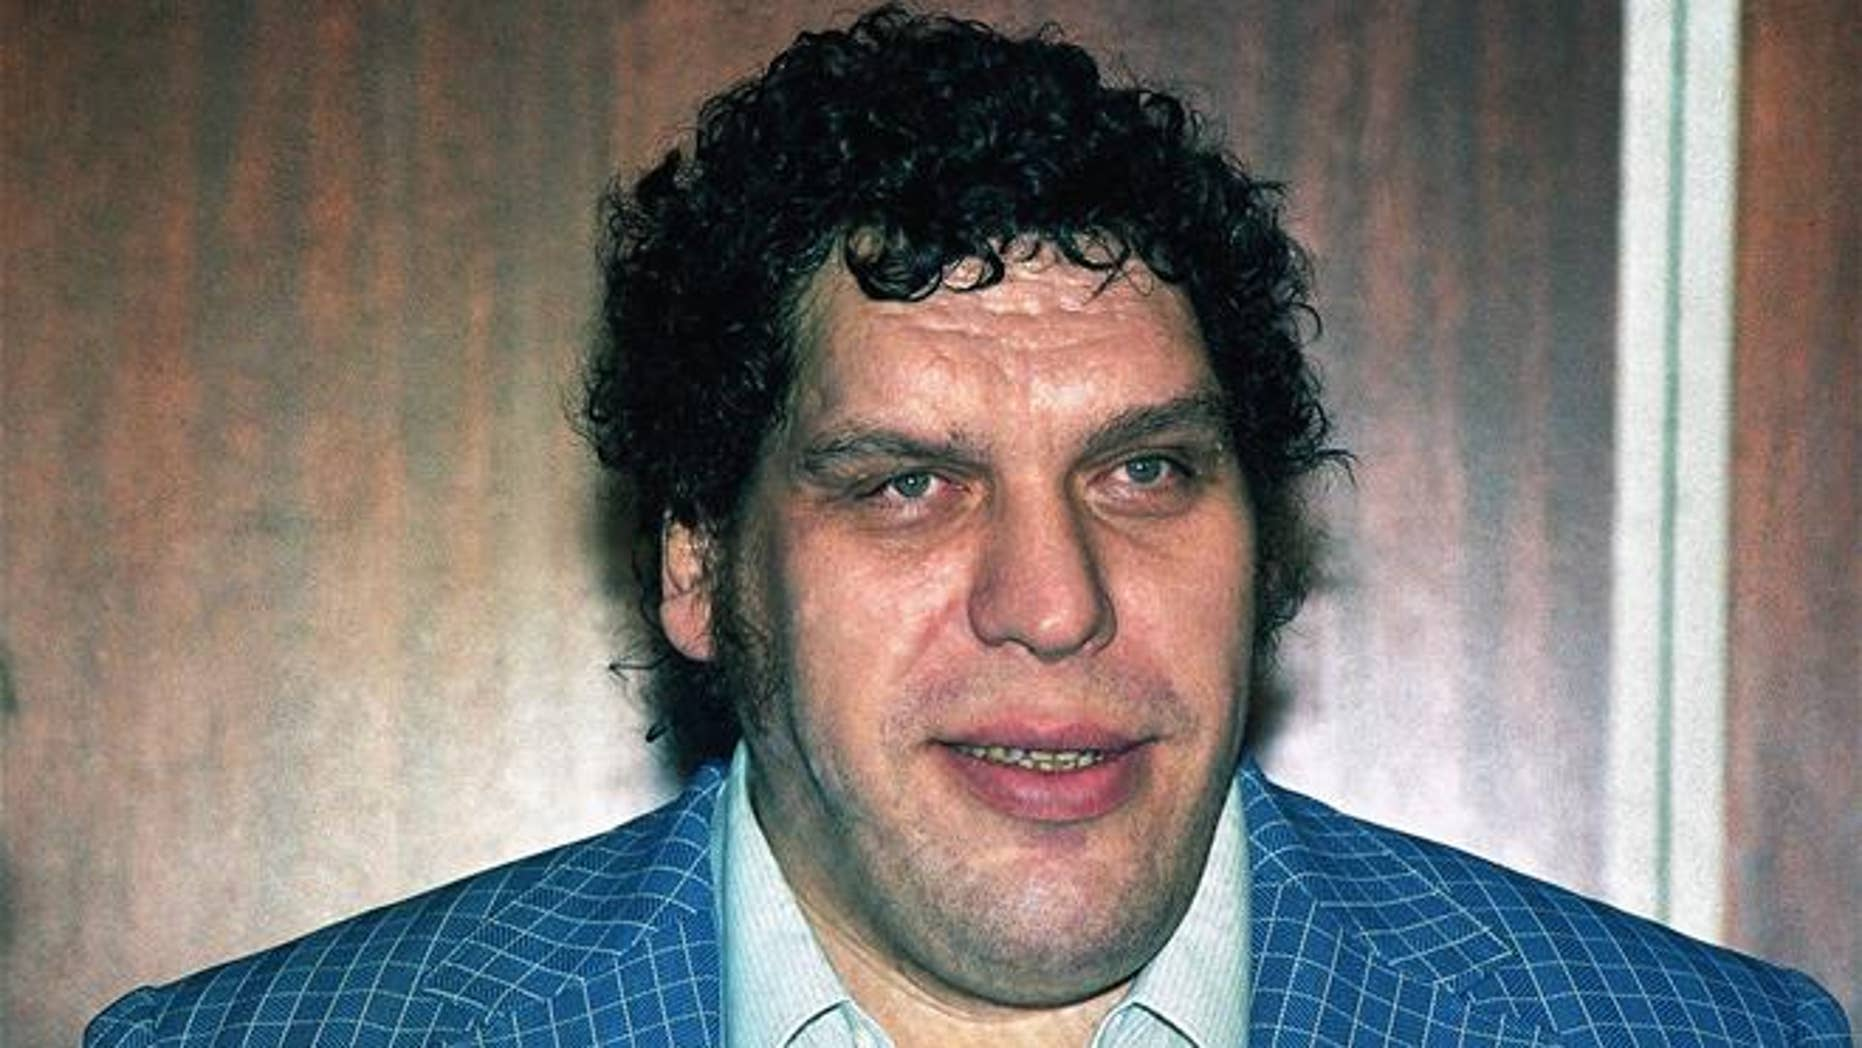 A 1988 file photo shows professional wrestler Andre the Giant.